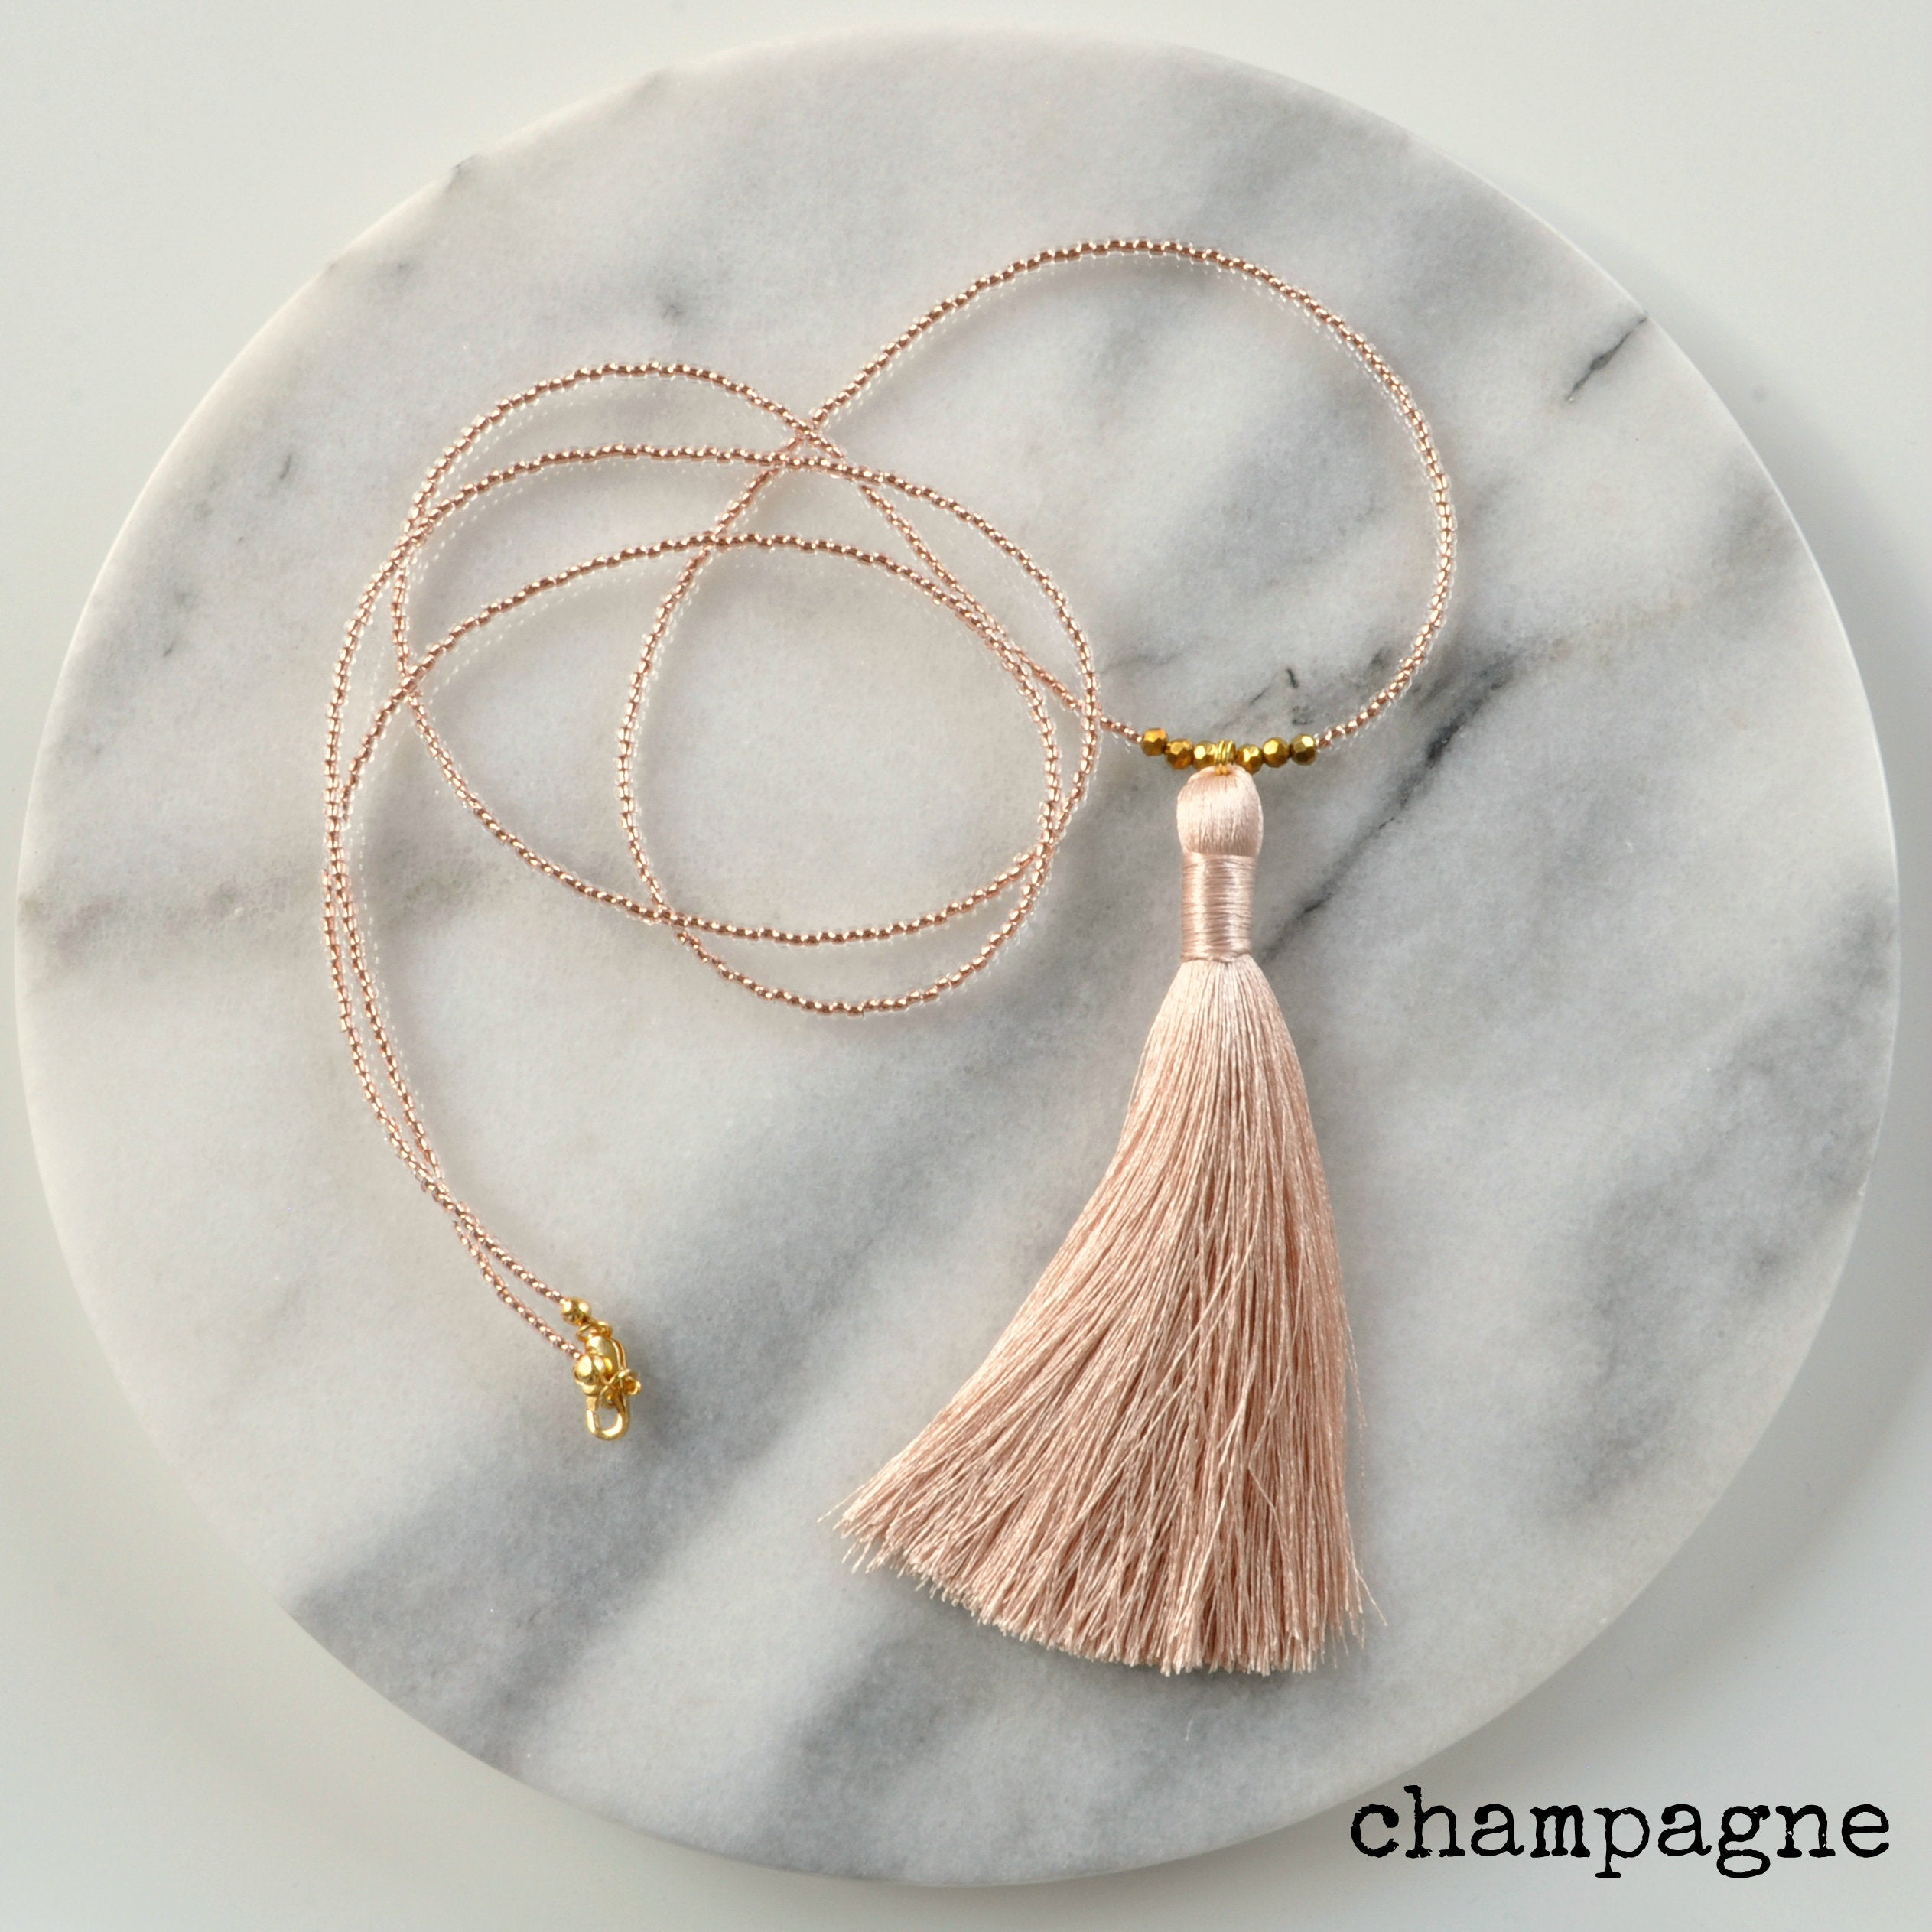 Libby & Smee Beaded Tassel Necklace in Champagne, still life labeled